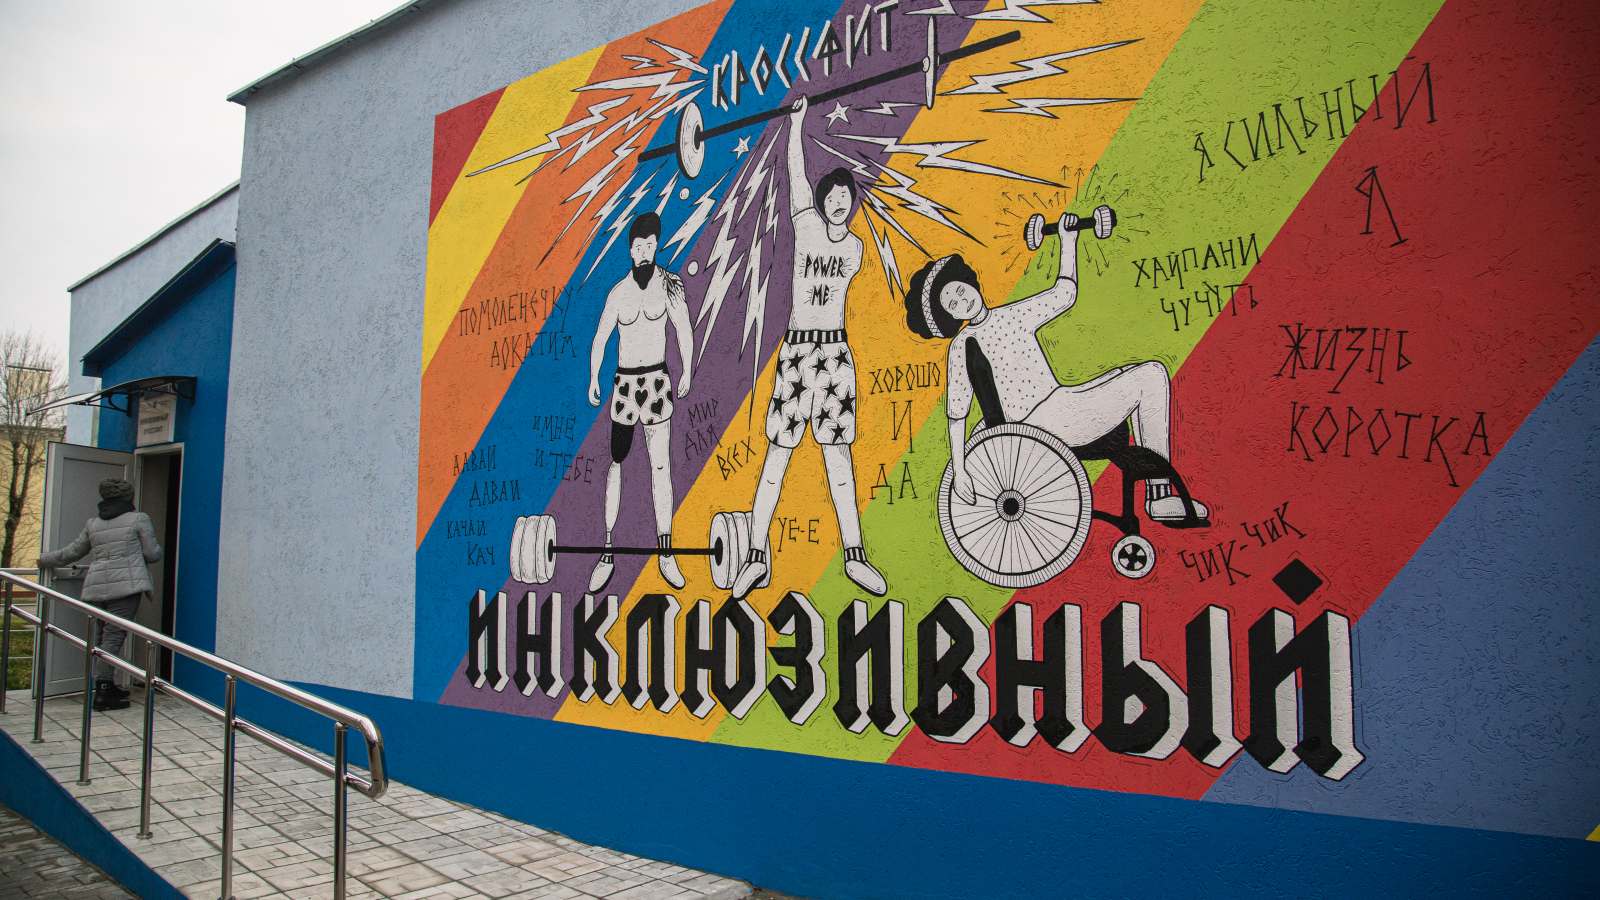 Inclusive CrossFit gym in Lida (Belarus)